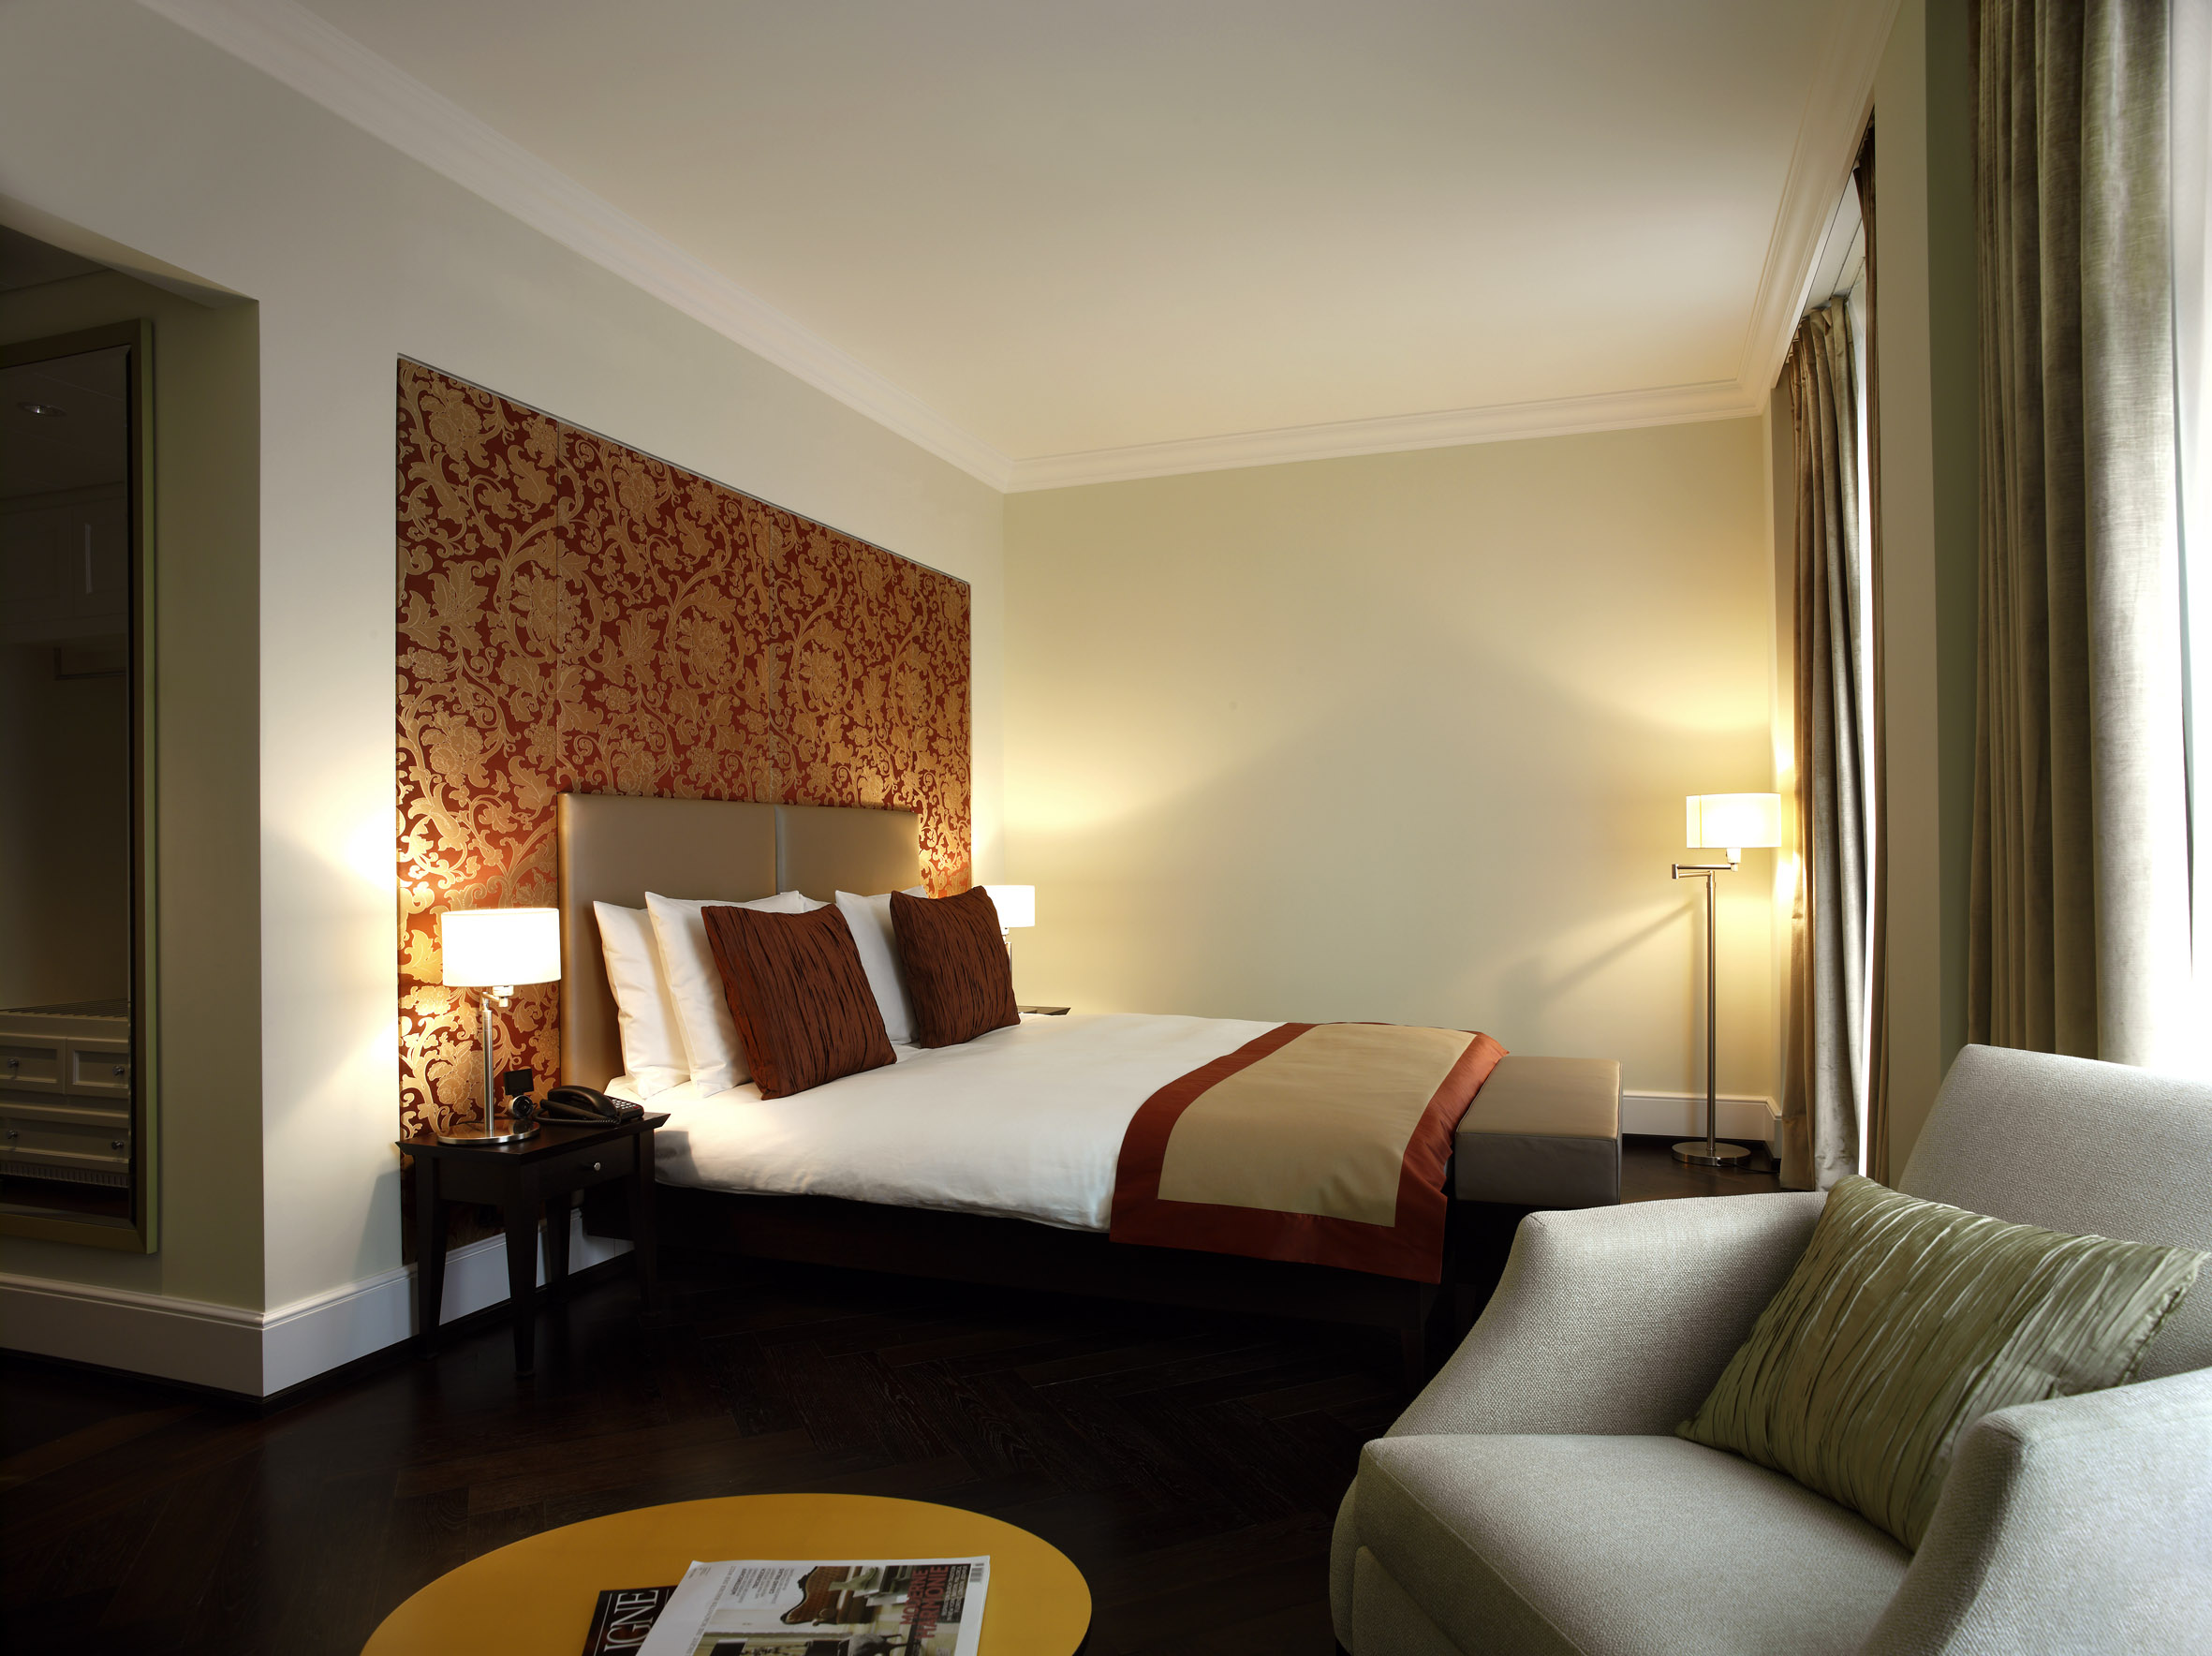 Double Room Deluxe in the Dolder Grand hotel